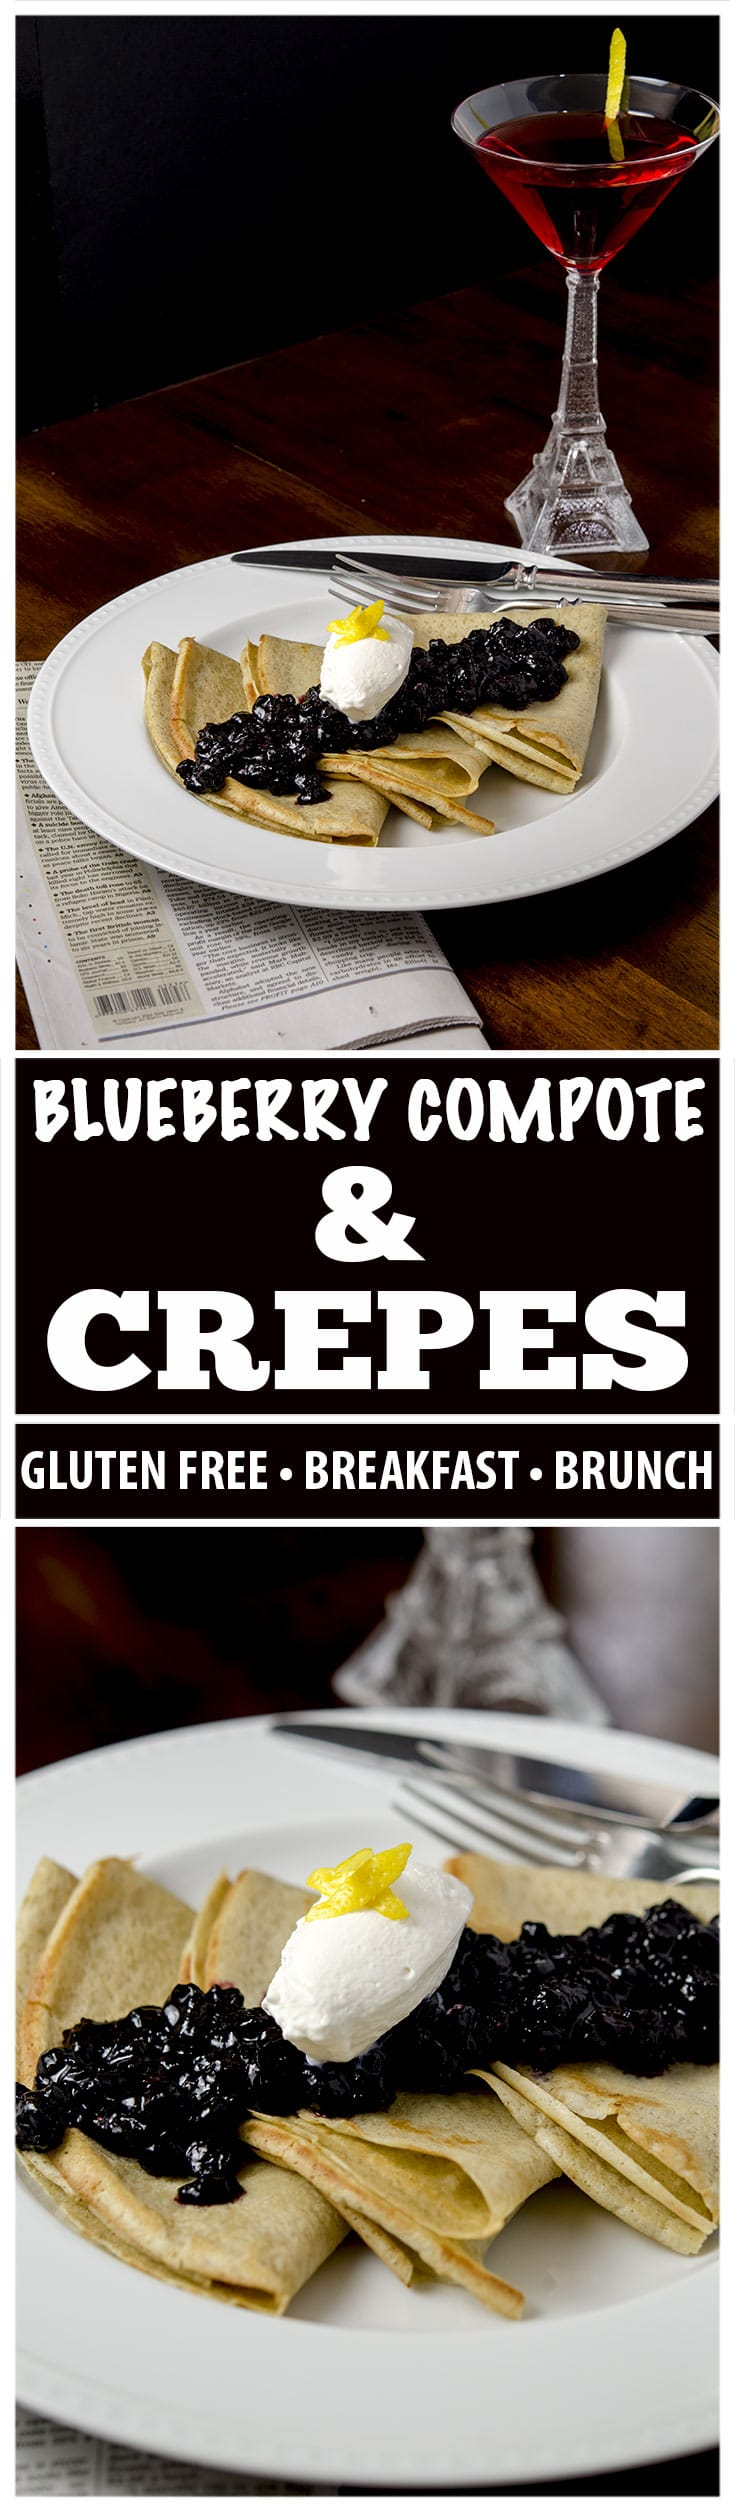 Try this amazing breakfast or brunch collection featuring gluten free crepes, blueberry compote and vanilla maple whipped cream. Just delightful.